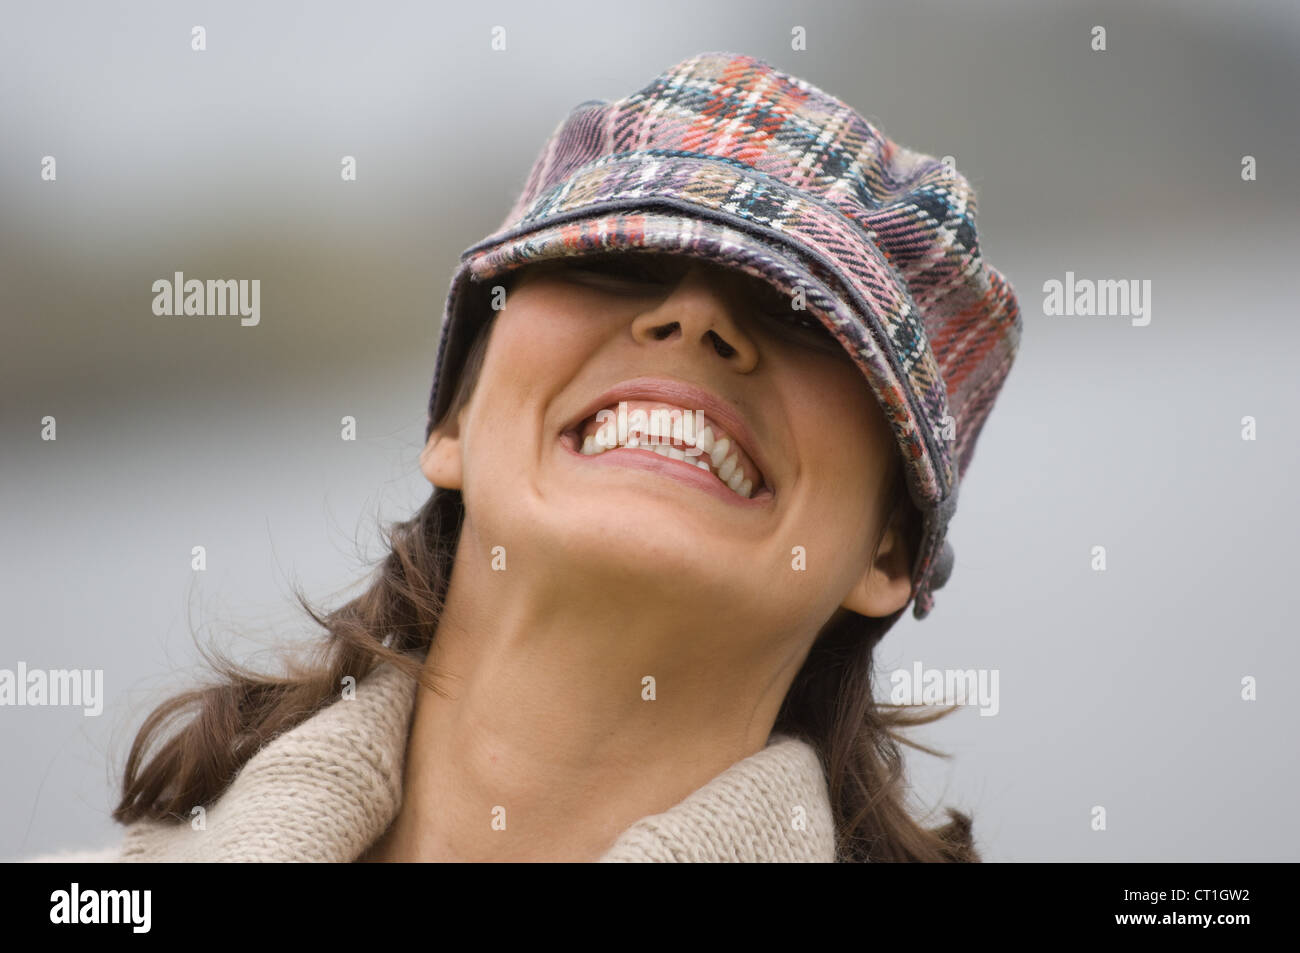 Smiling woman peering from under cap - Stock Image